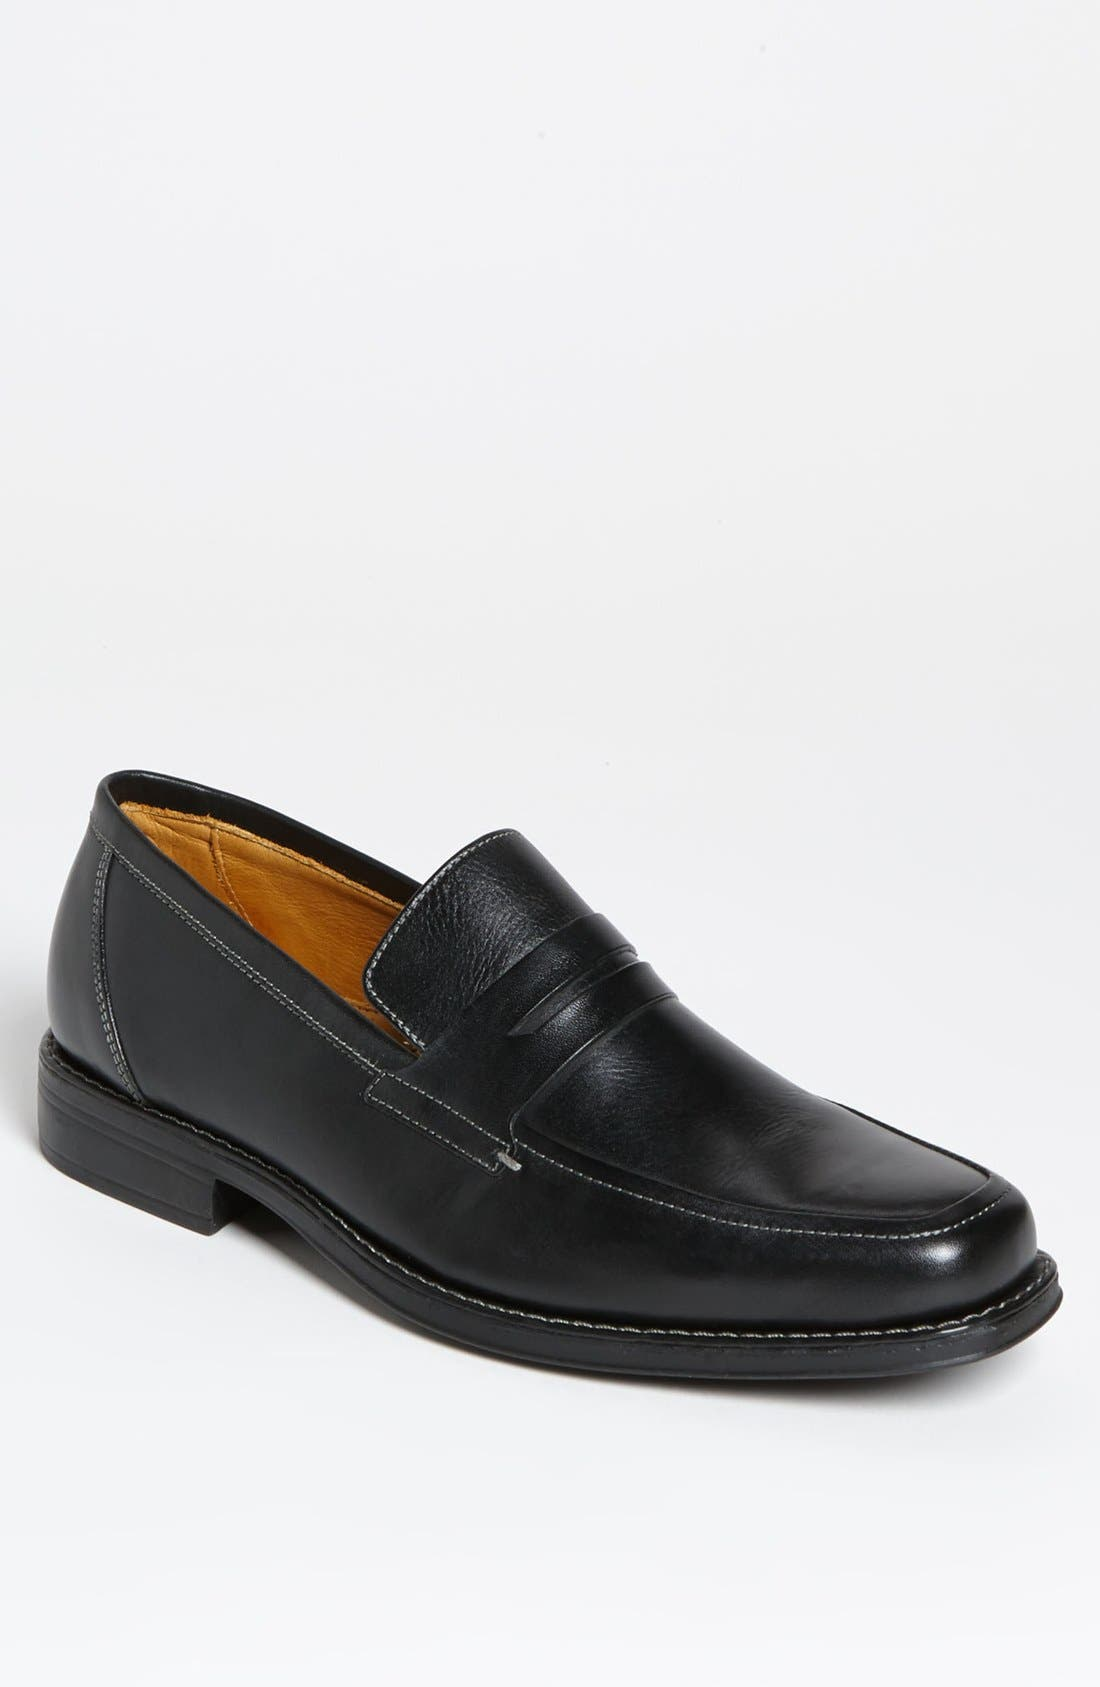 'Stuart' Penny Loafer,                             Main thumbnail 1, color,                             BLACK